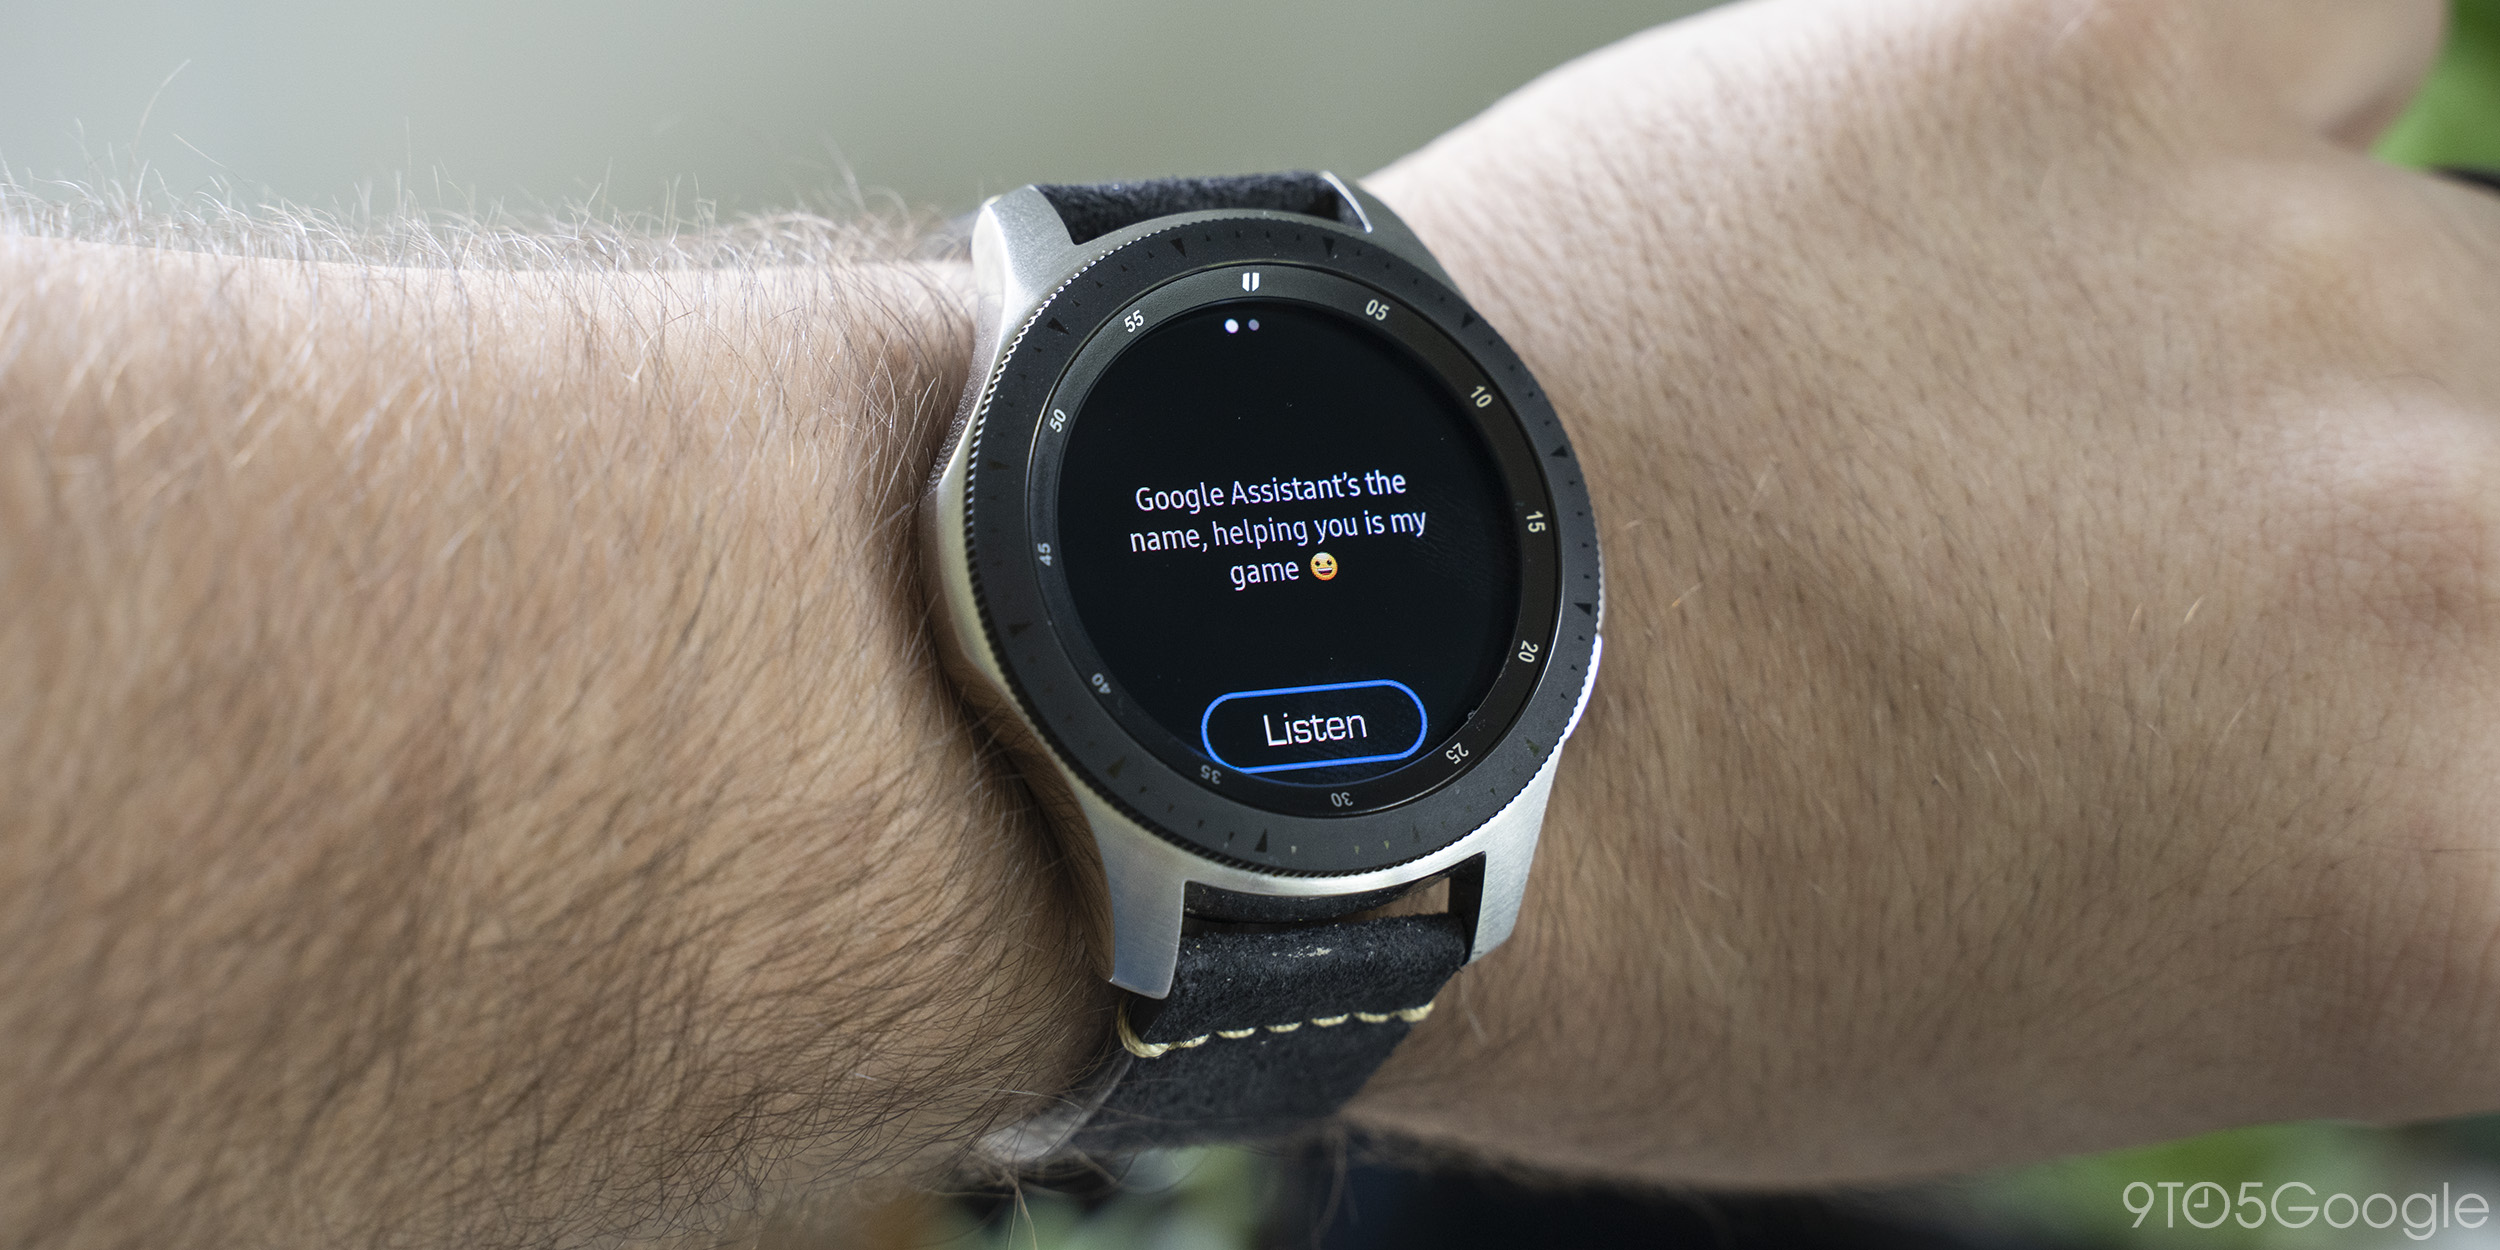 How to use Google Assistant on Samsung Galaxy Watch - 9to5Google